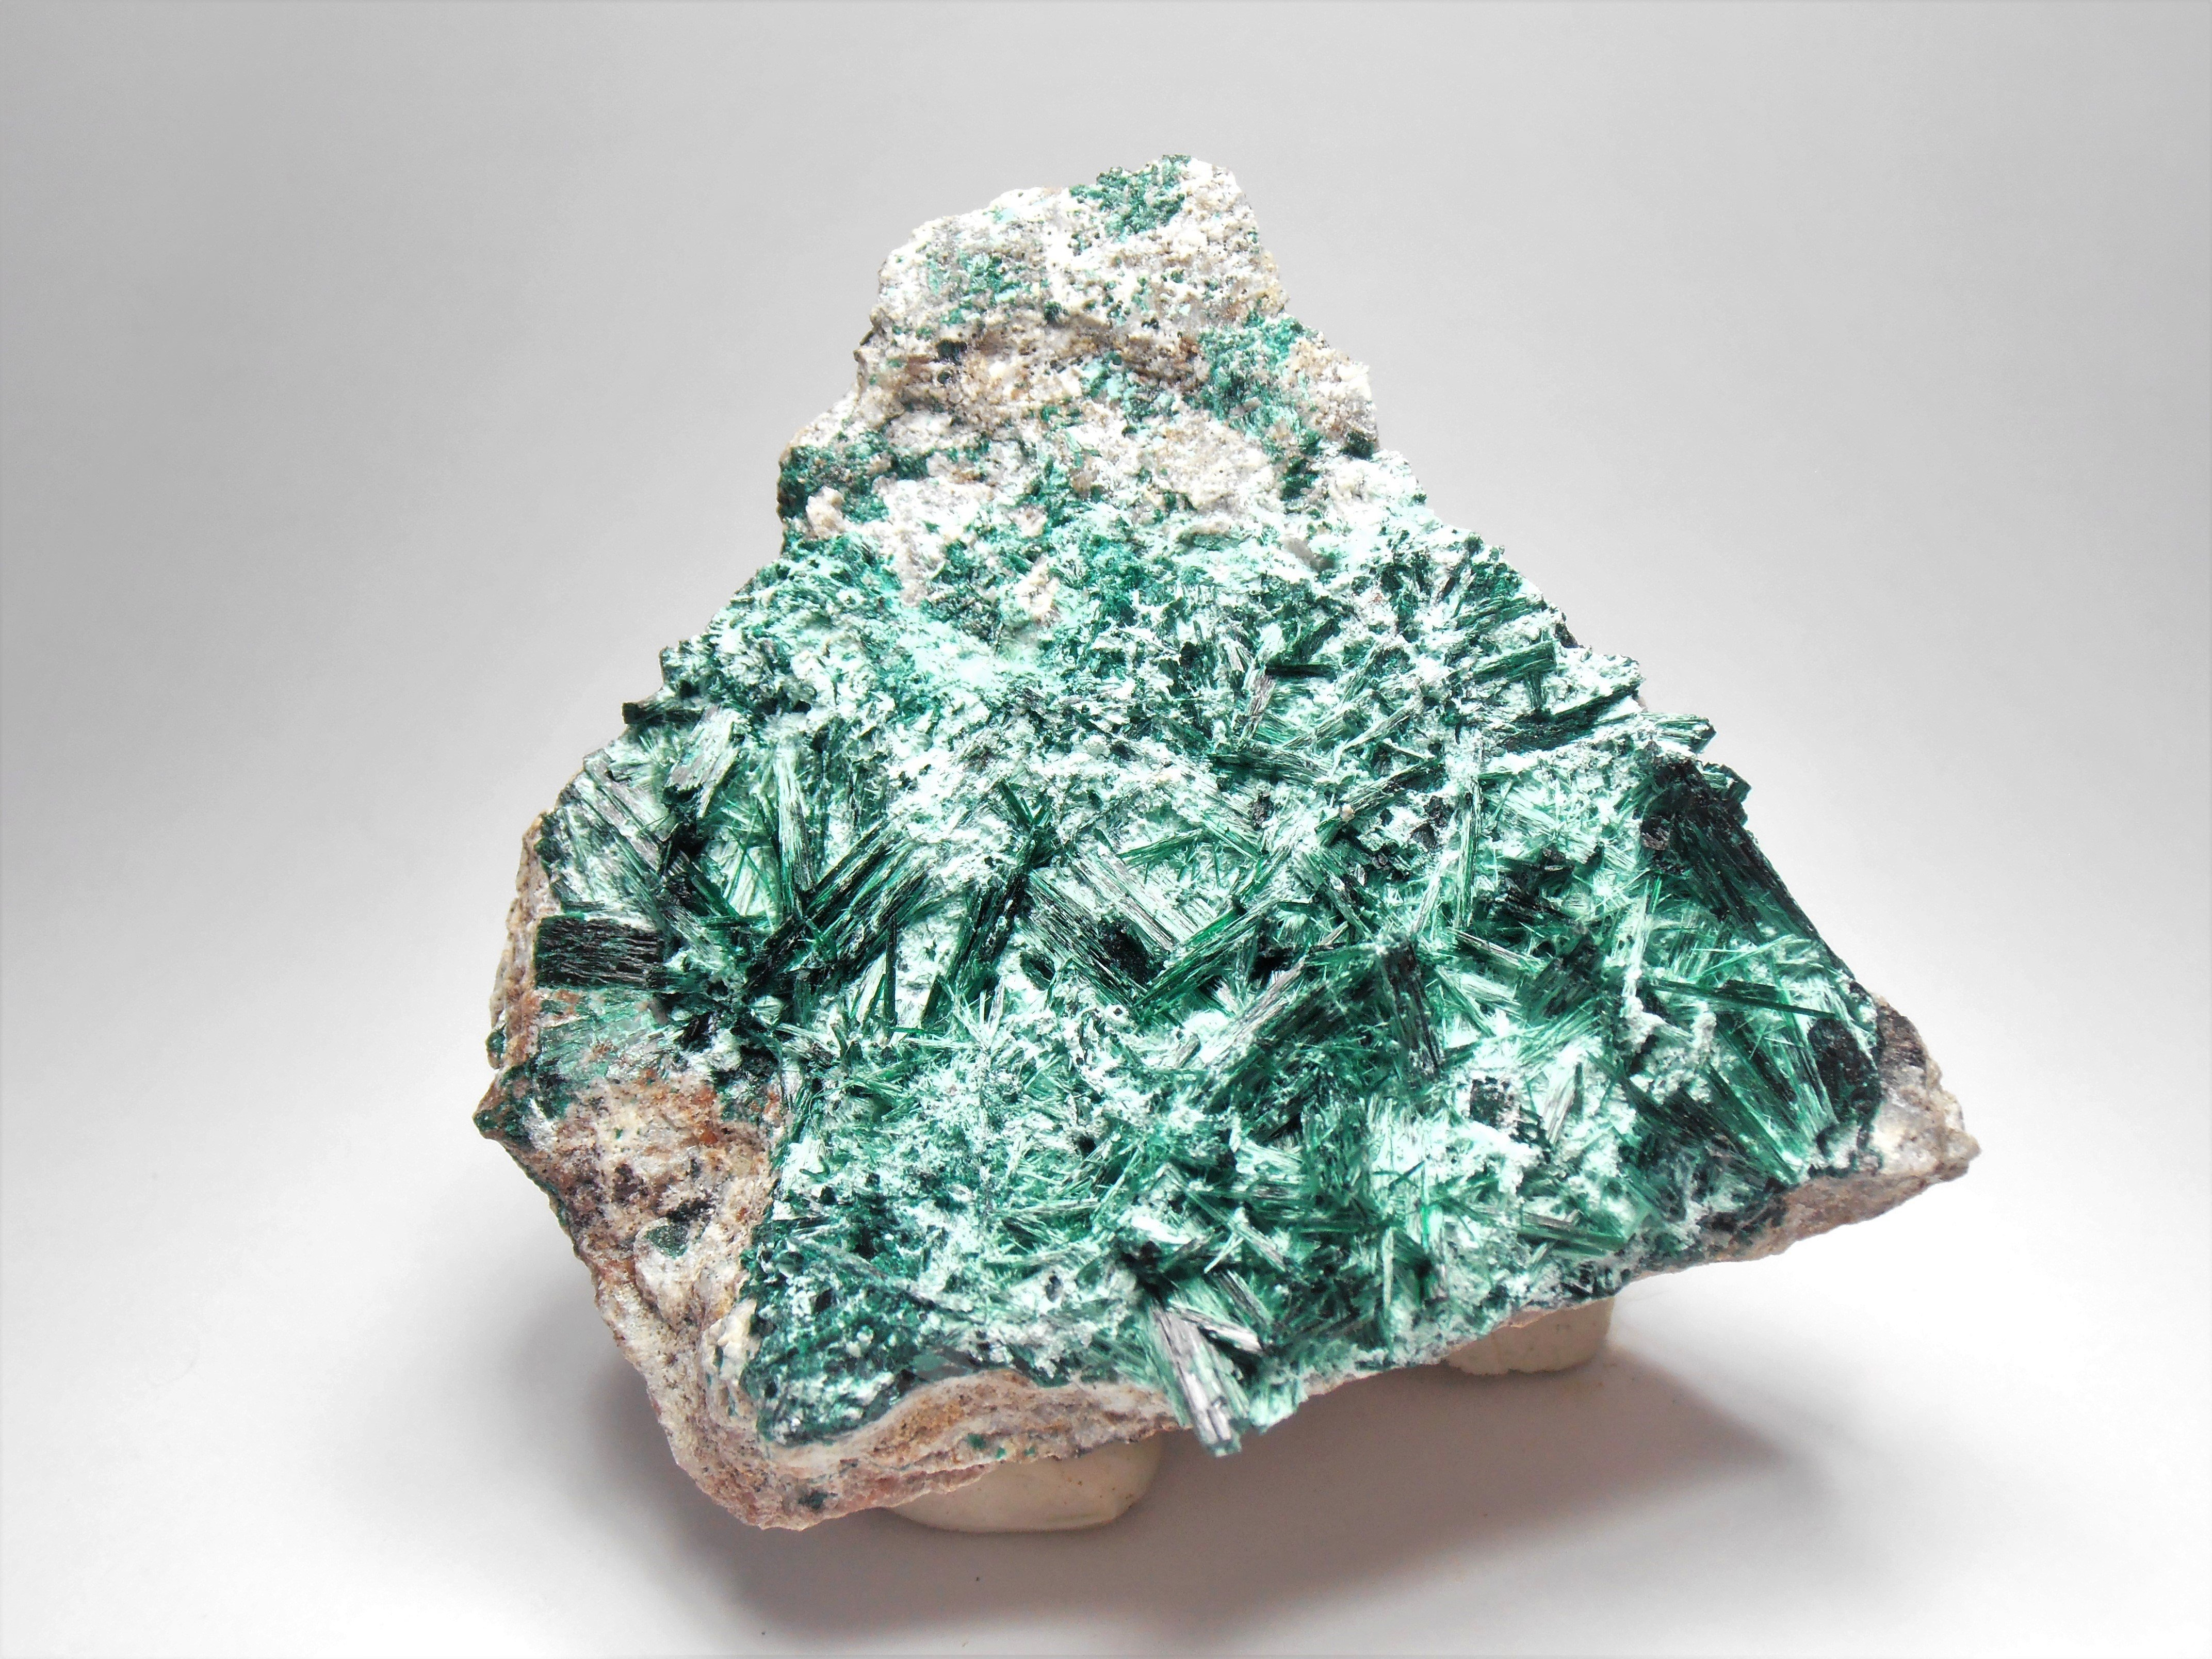 Brochantite - Prismatic Crystals from the Milpillas Mine, in Sonora